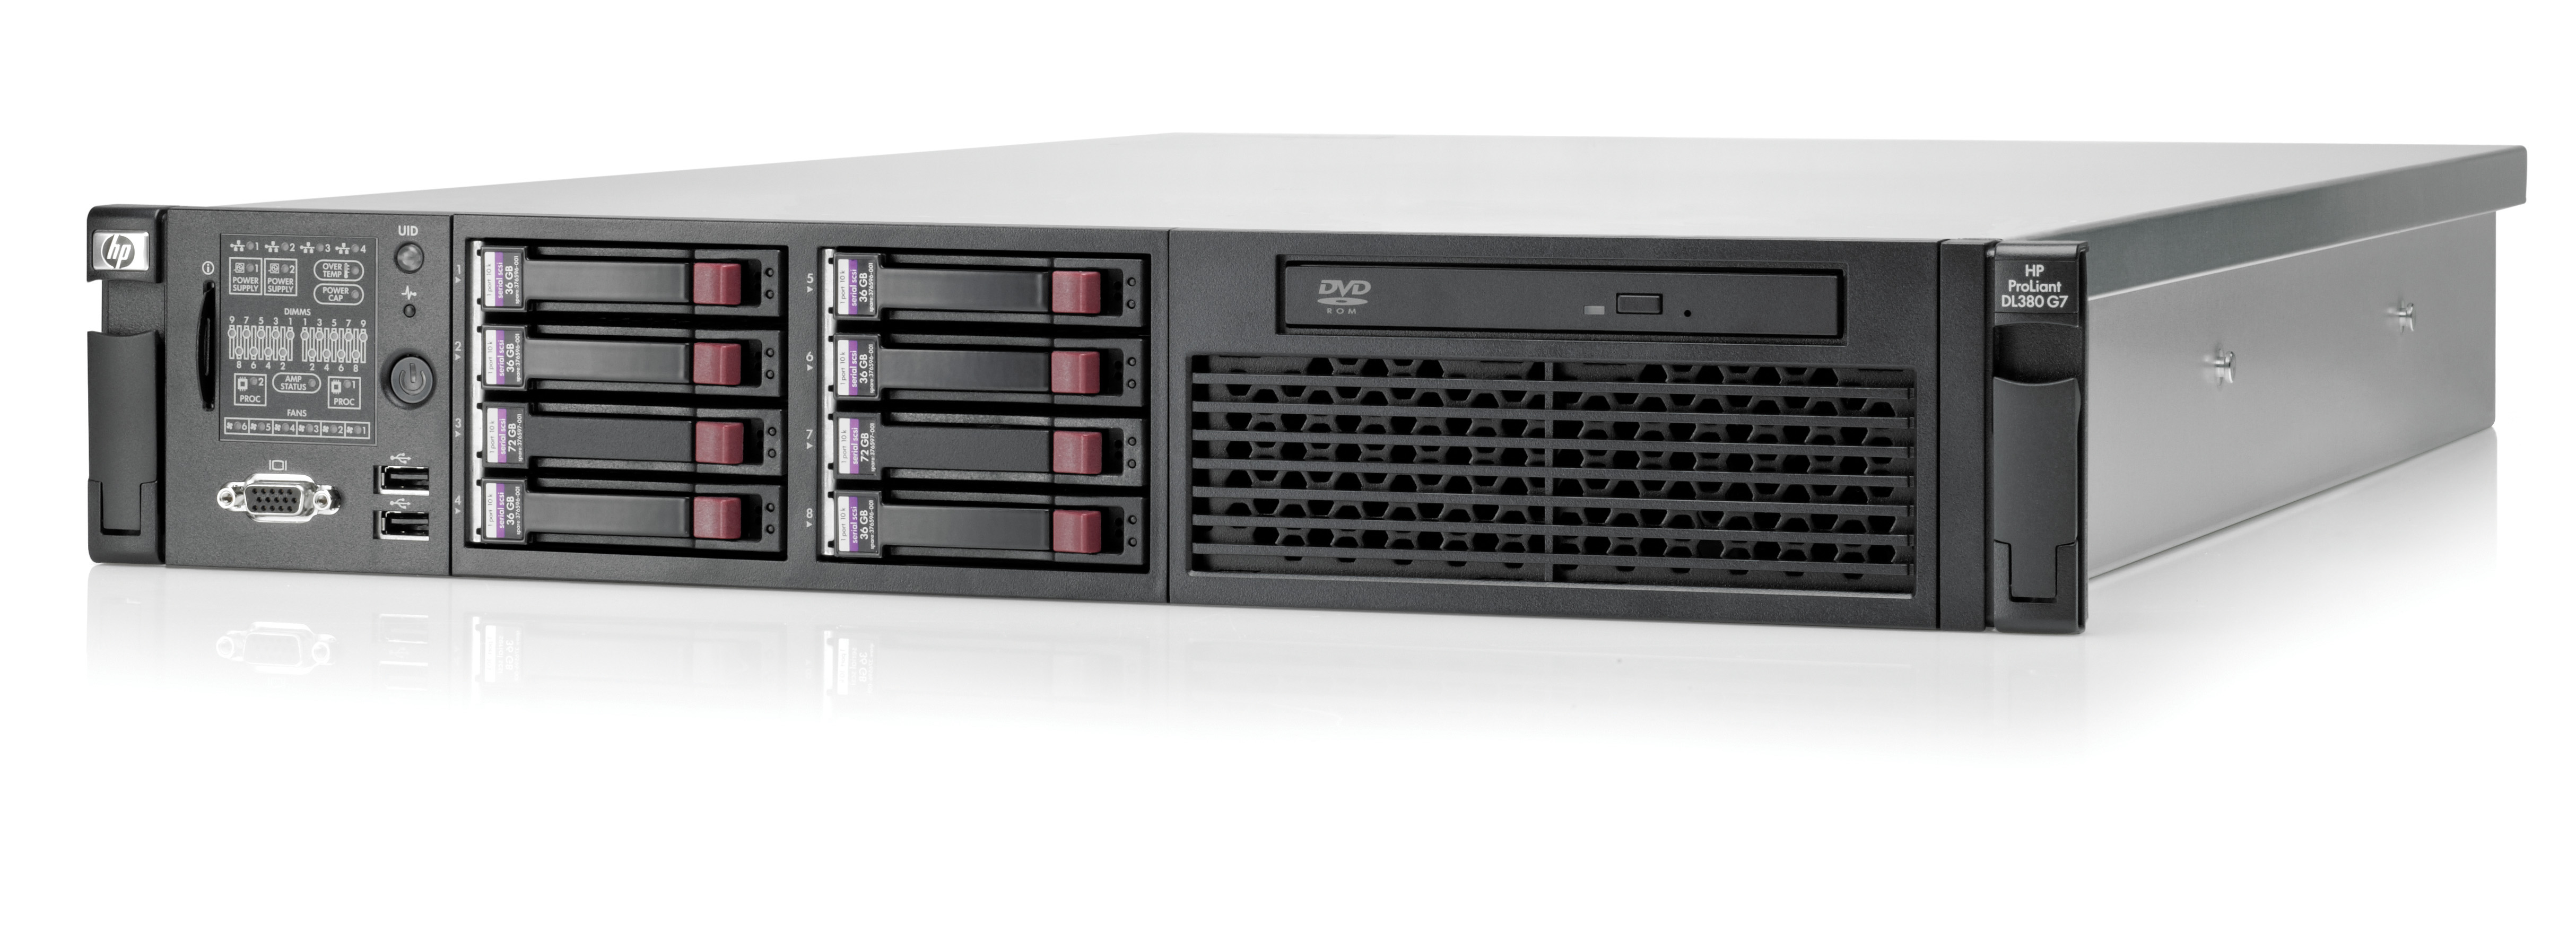 HP Proliant DL380 G7 Performance server